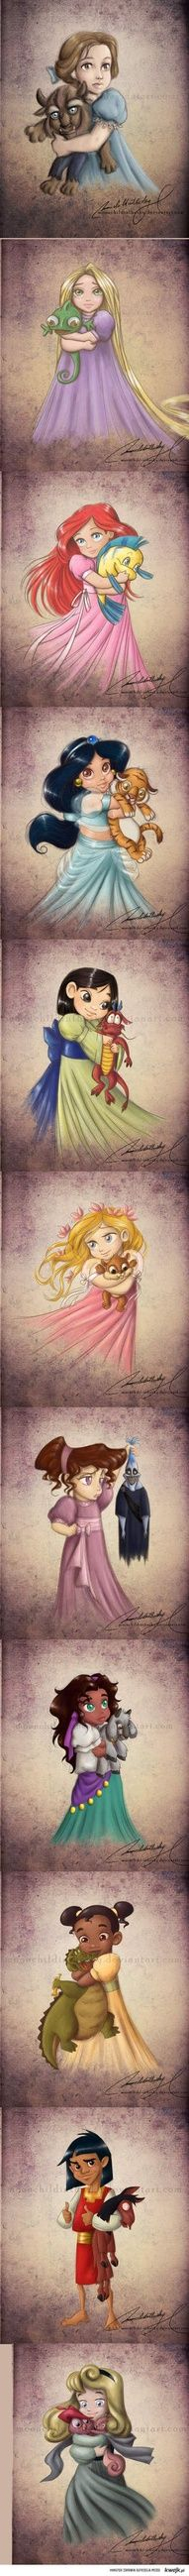 baby disney princess - how cute :)